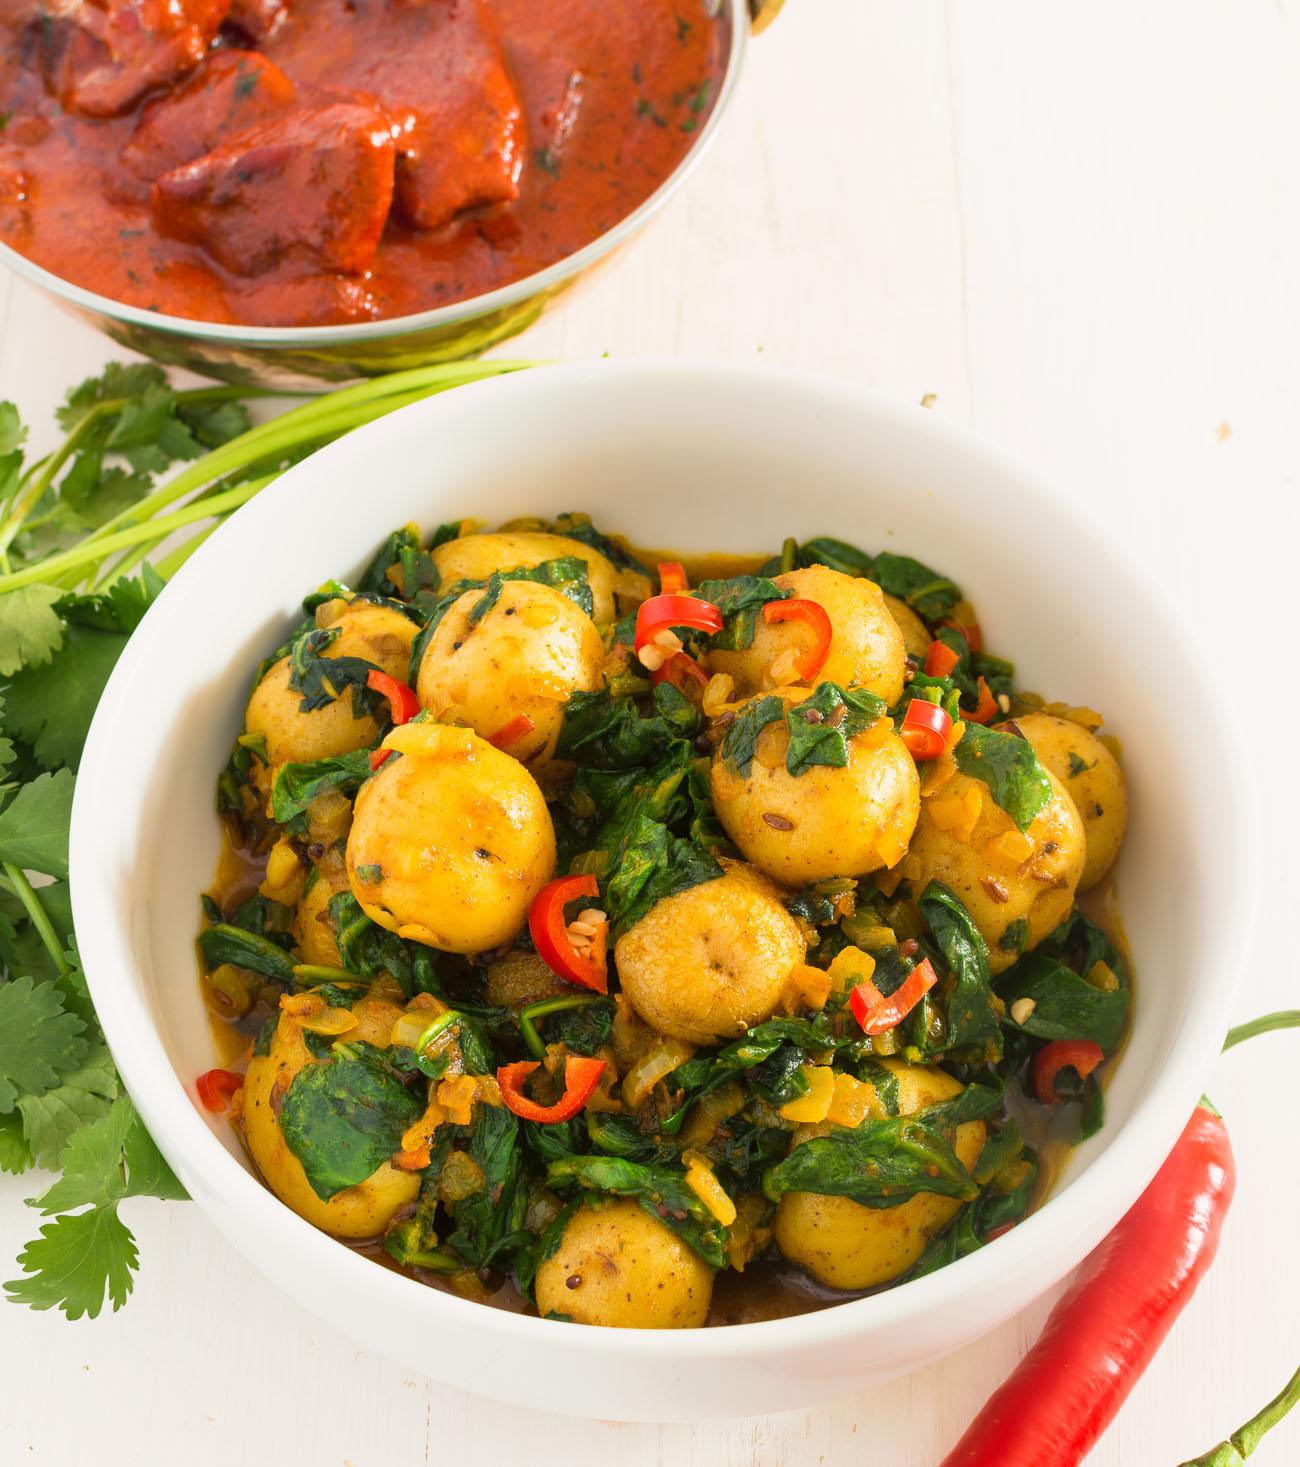 Sag aloo or spinach and potato curry is a delicious vegetarian meal.